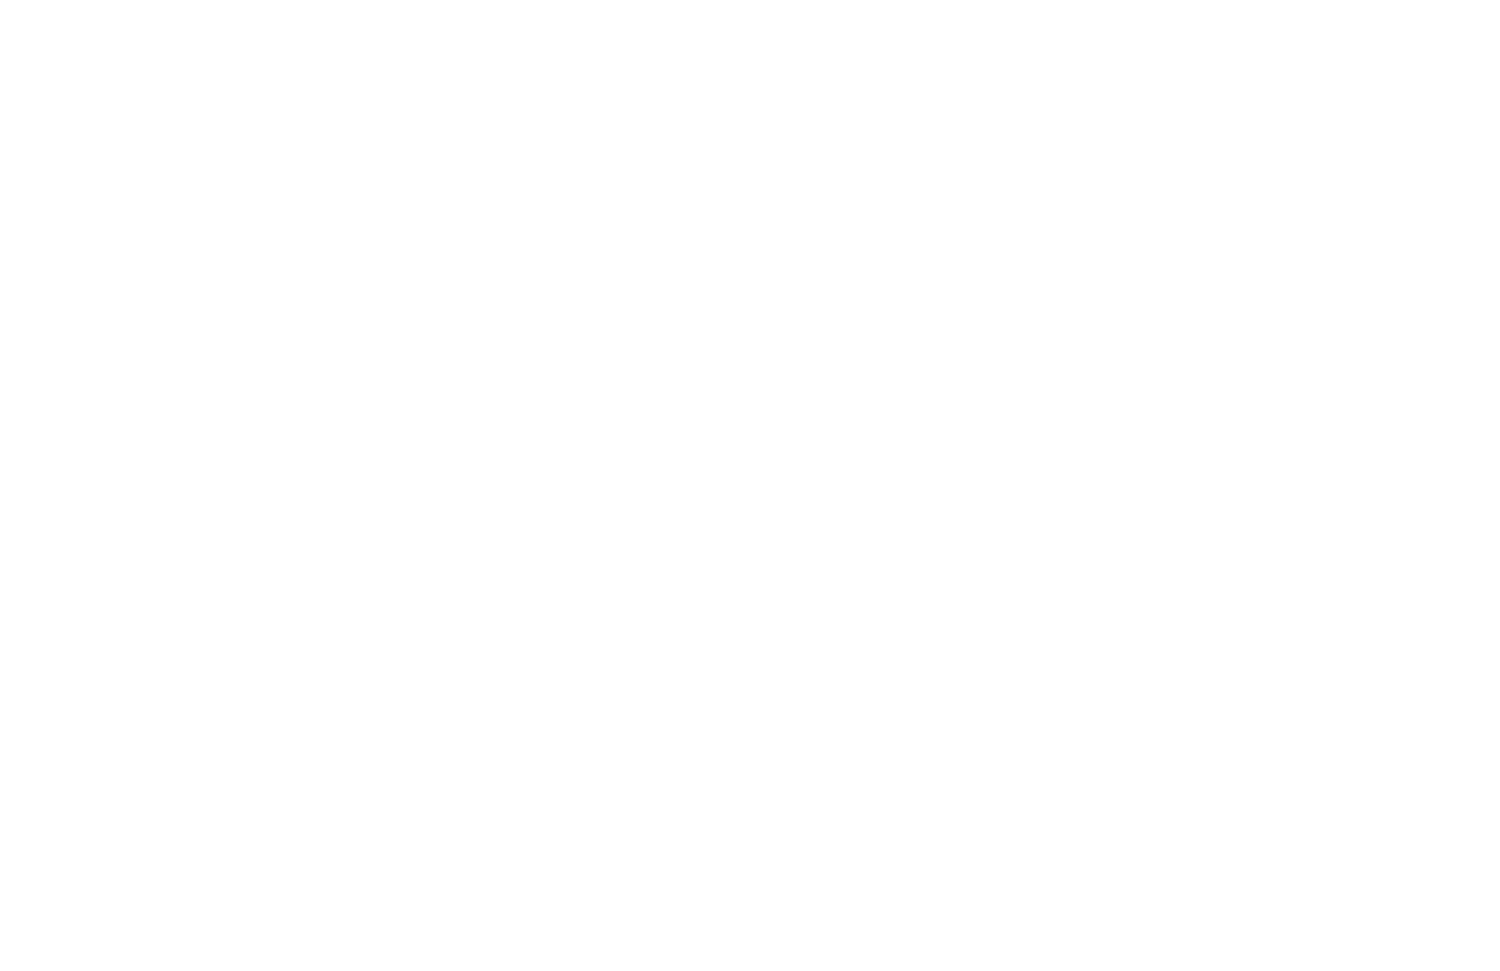 Helsinki International Artists' Association